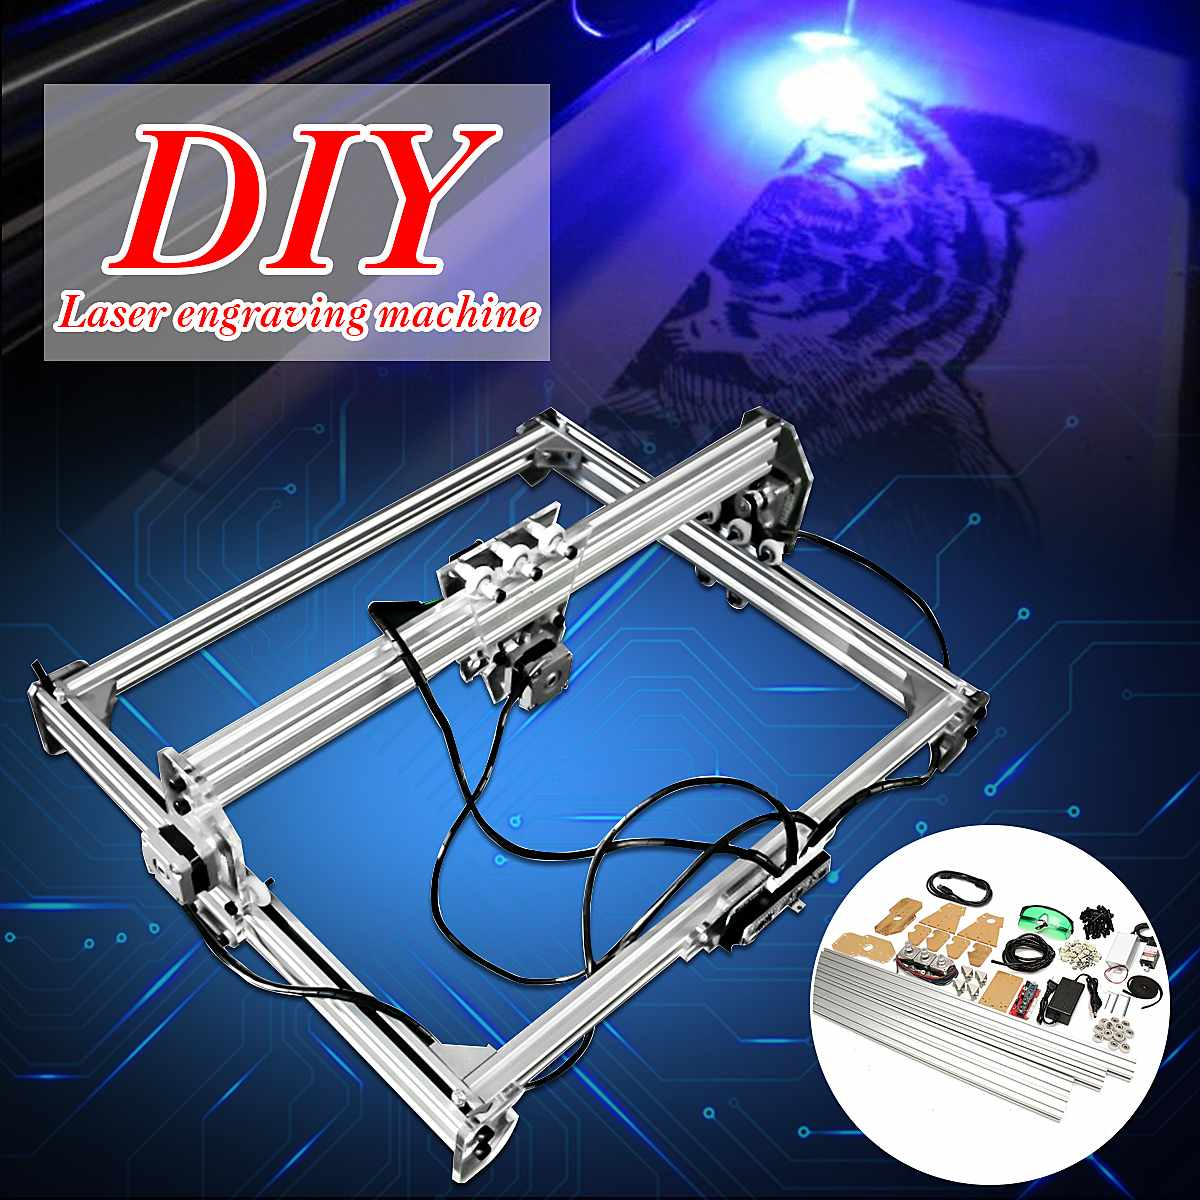 50*65cm 15W CNC Laser Engraver Engraving Machine For Metal/Wood Router/DIY Cutter 2Axis Engraver Desktop Cutter+ Laser